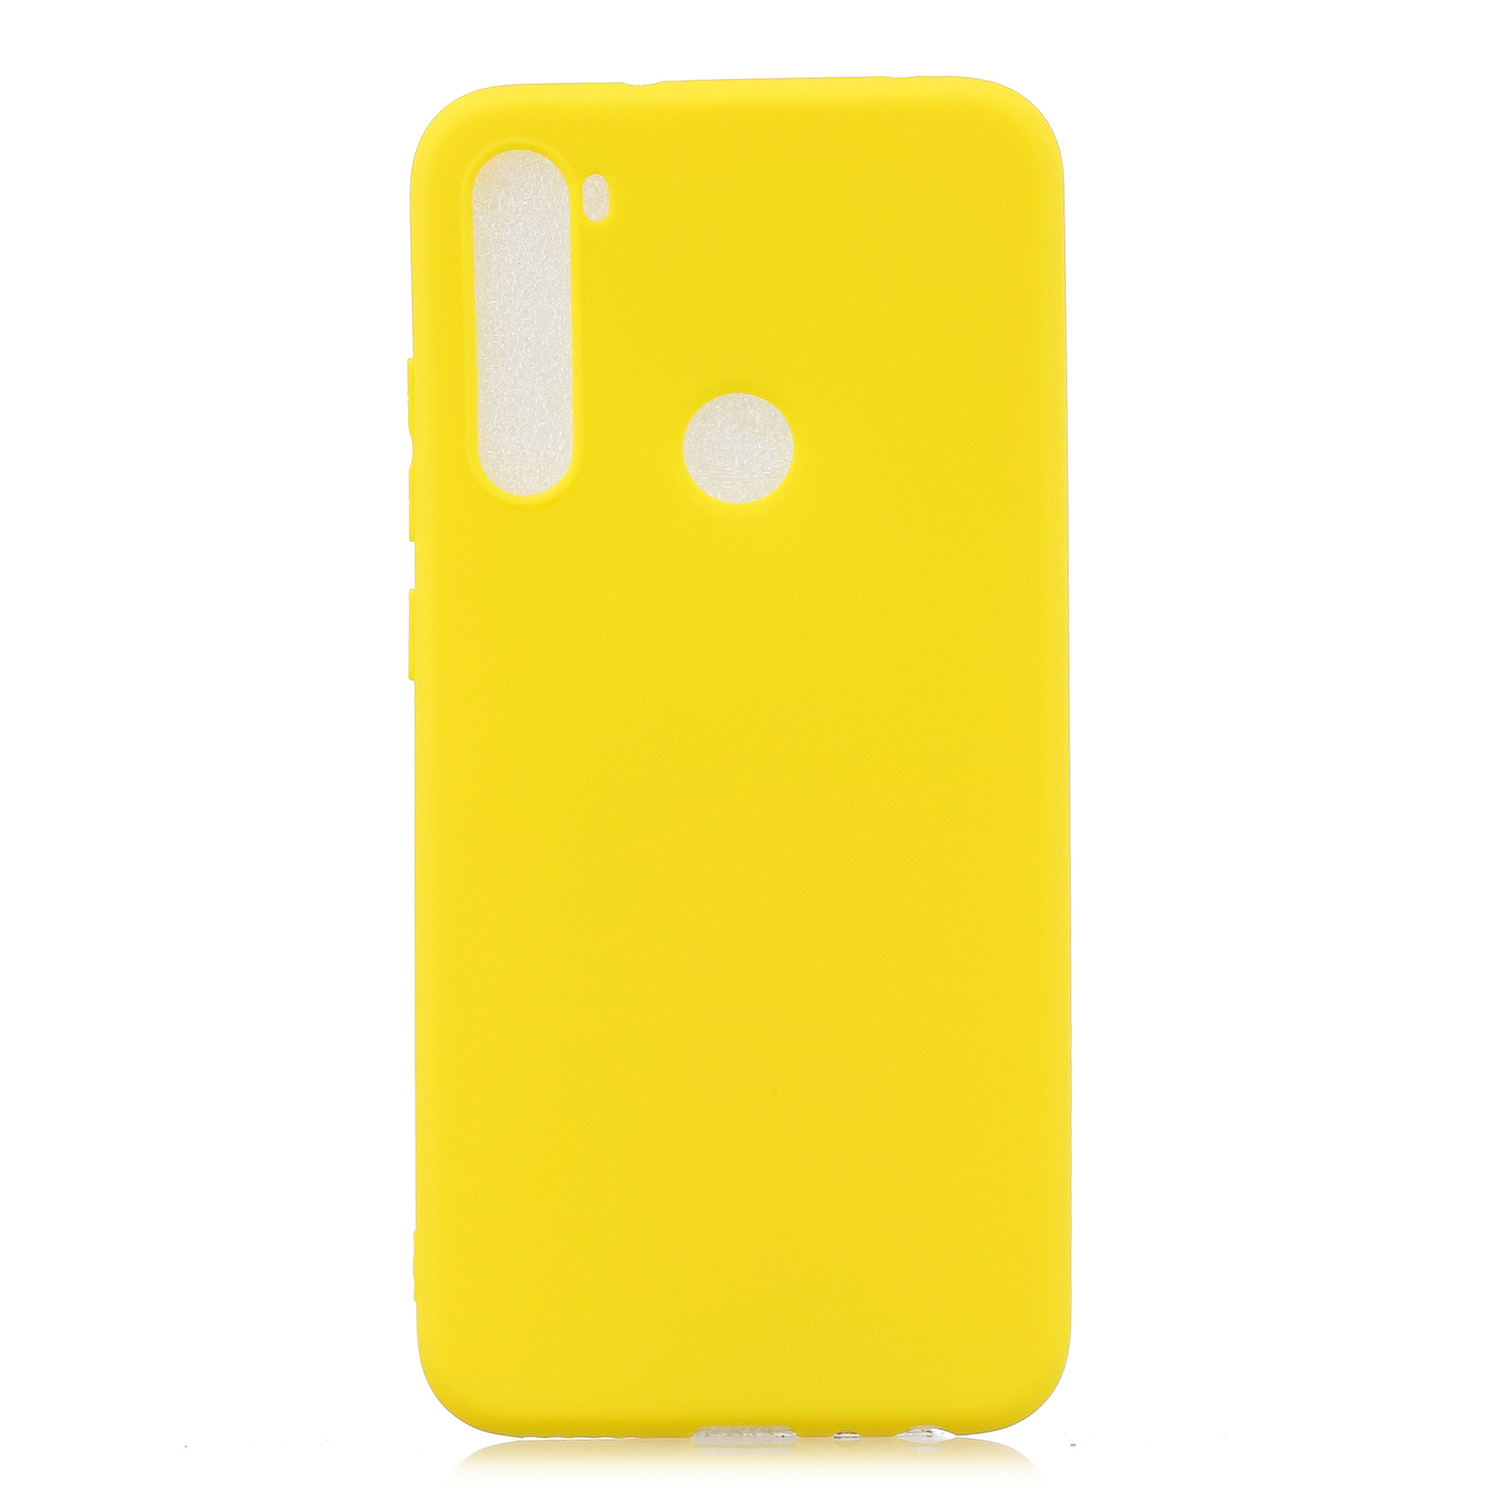 For Redmi NOTE 8 NOTE 8 Pro Soft Candy Color Frosted Surface Shockproof TPU Back Cover Mobile Phone Case yellow